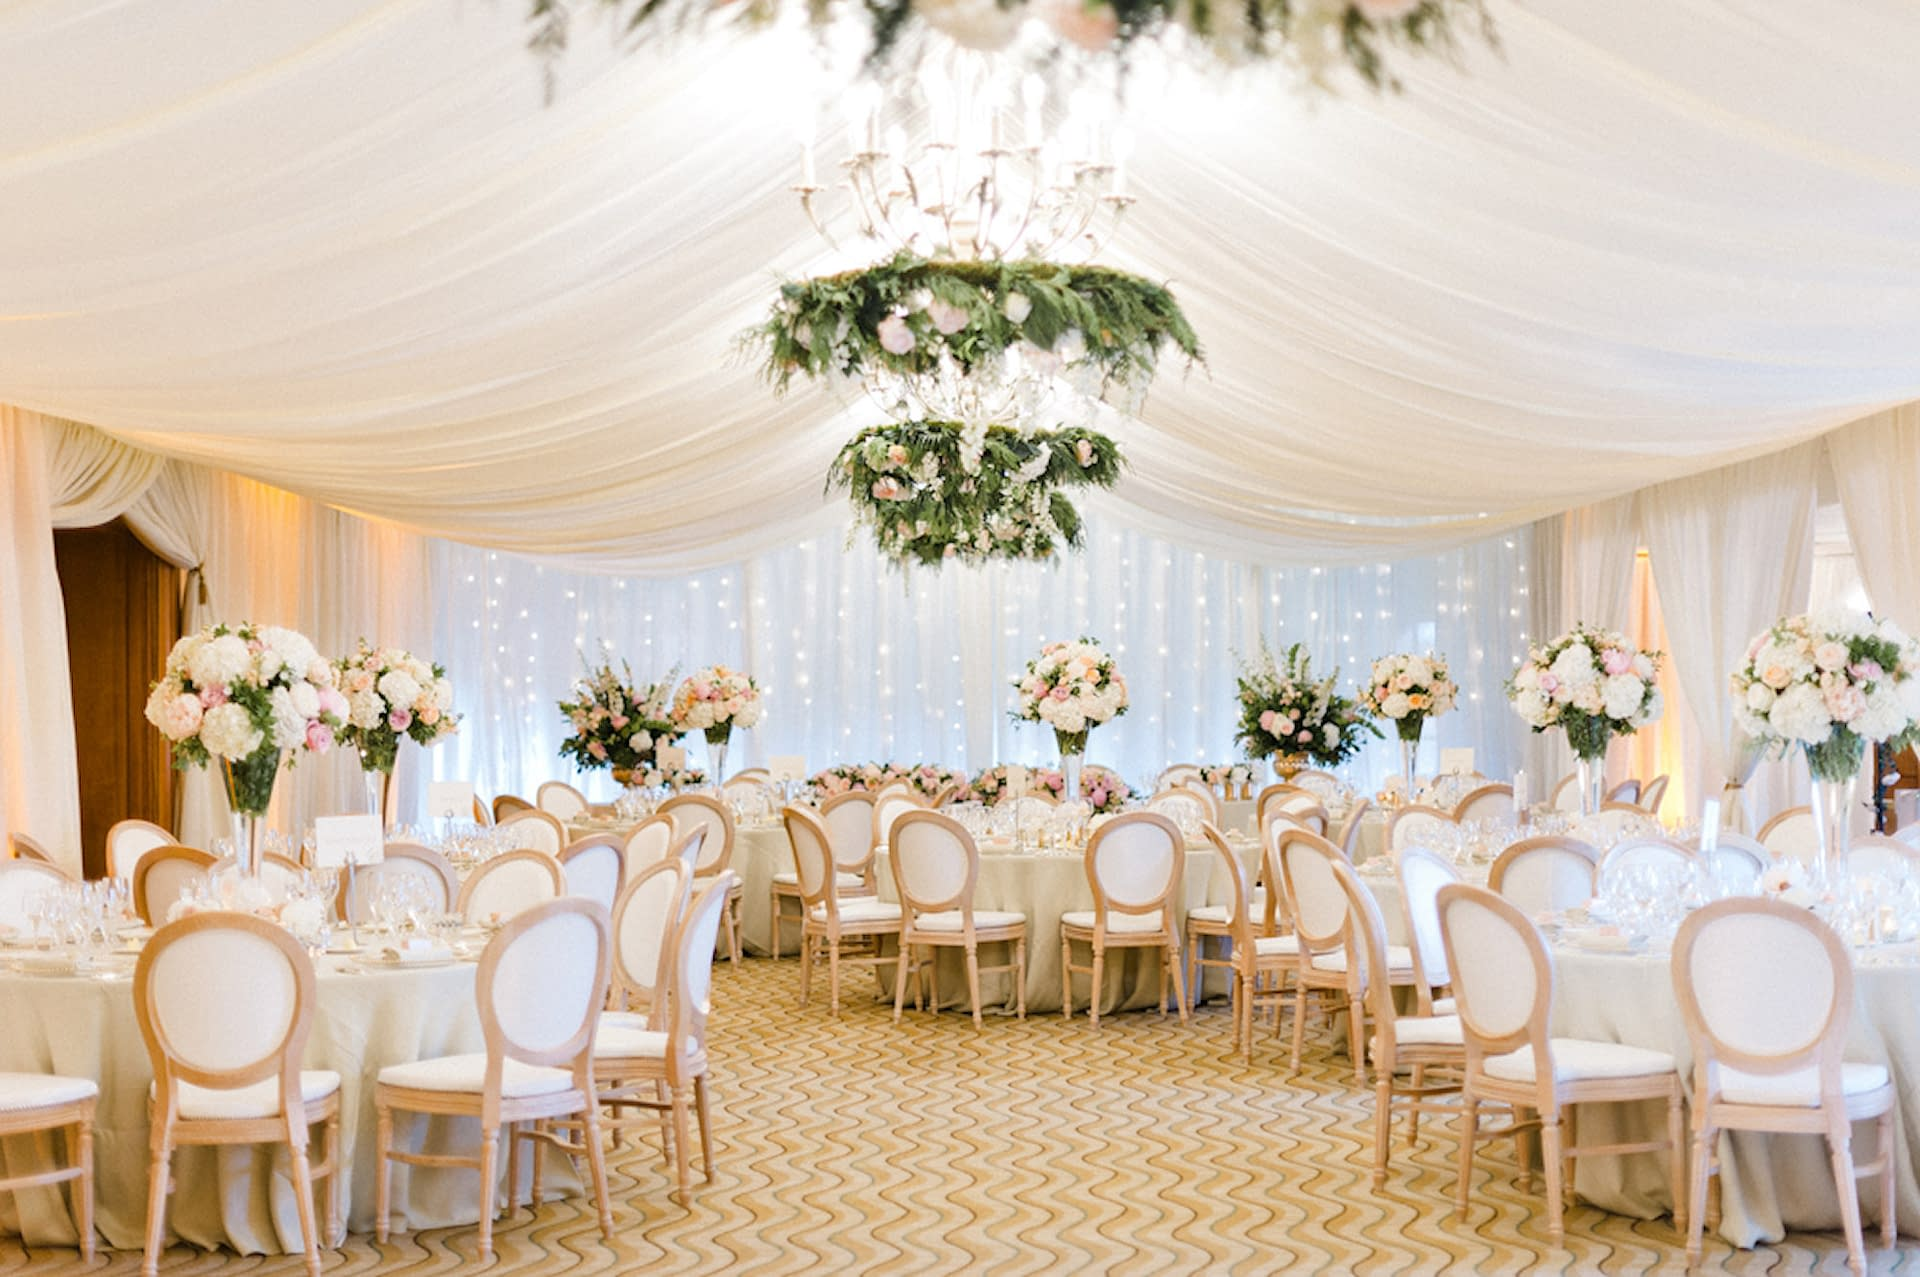 Wall and ceiling drapes with fairy light cascade and warm lighting supplied by Stressfree event planning company at Pennyhill Park wedding venue UK